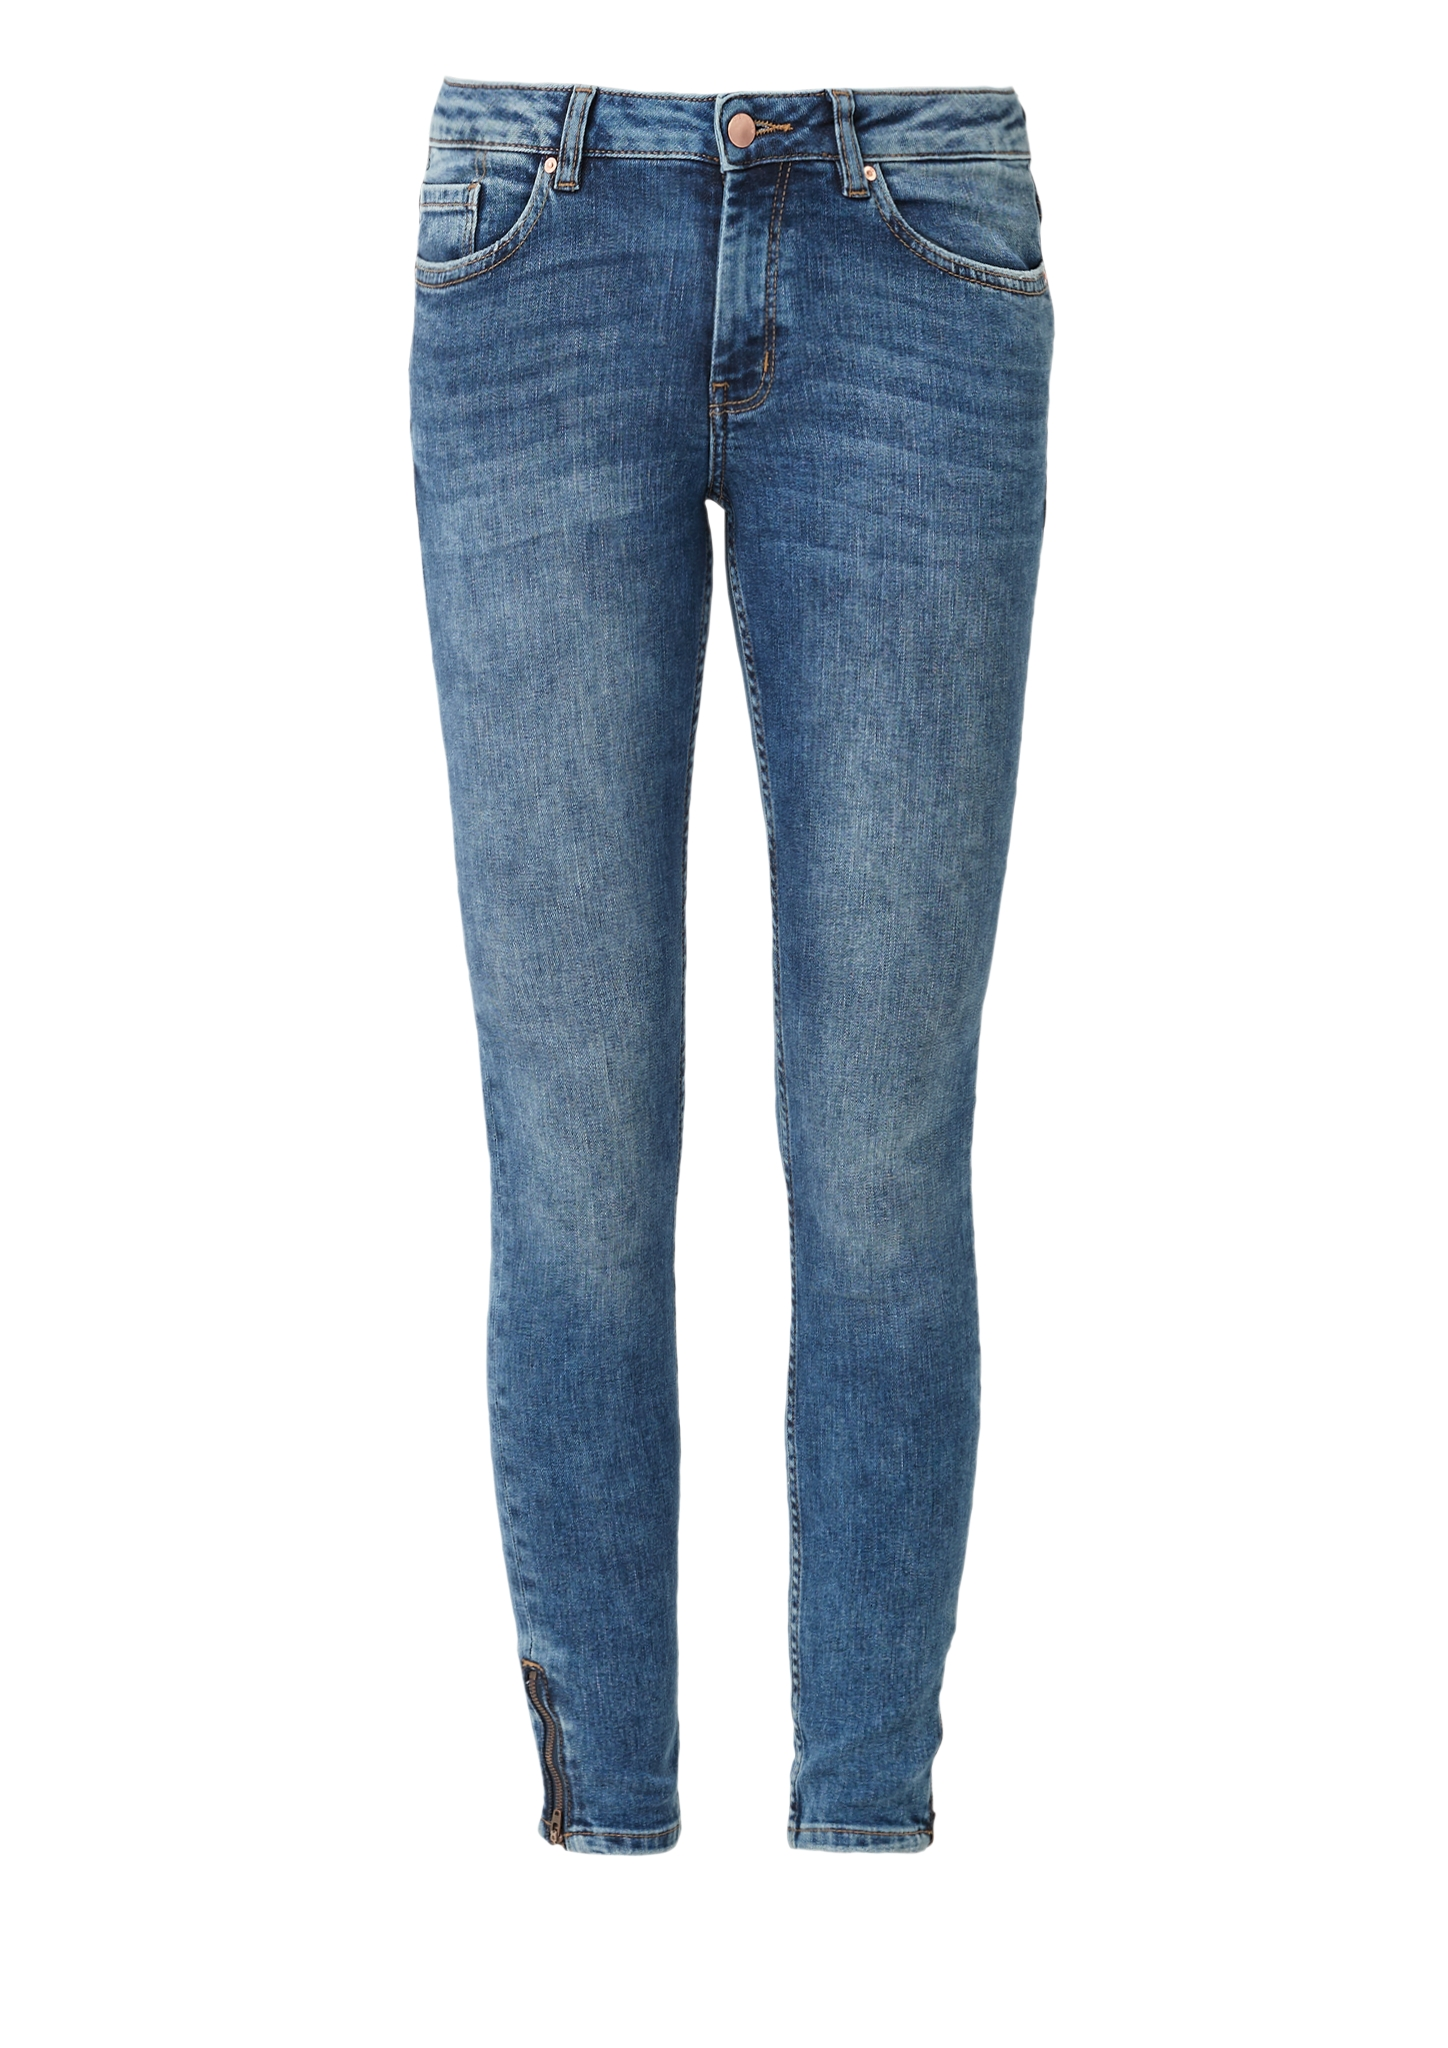 7/8-Jeans | Bekleidung > Jeans > 7/8-Jeans | Blau | 85% baumwolle -  14% polyester -  1% elasthan | Q/S designed by